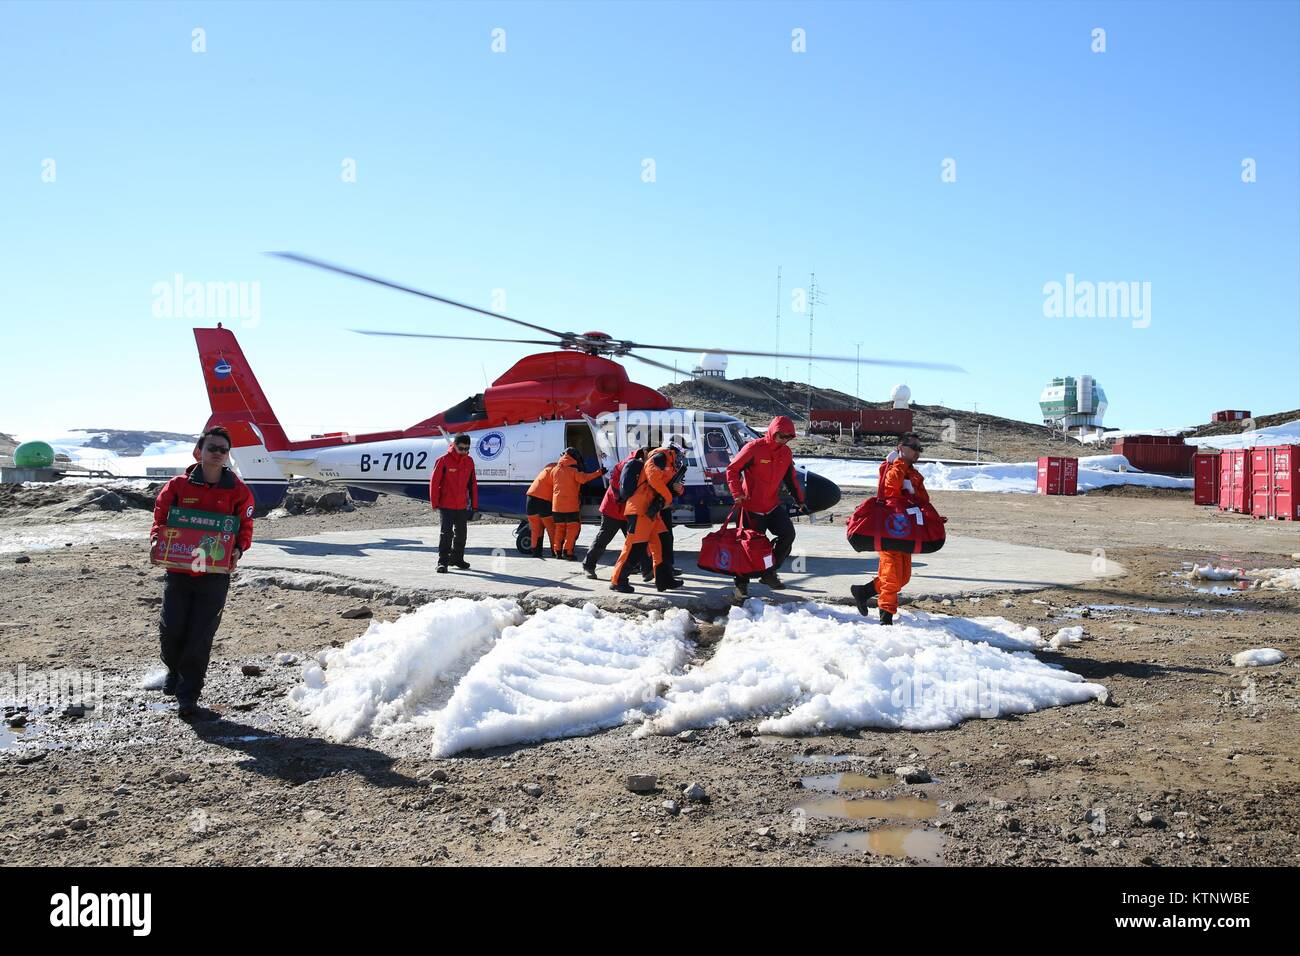 dd01eb76f7a Members of China's Antarctic expedition get off a helicopter after arriving  at Zhongshan station in Antarctic, Dec. 27, 2017. China's research  icebreaker ...